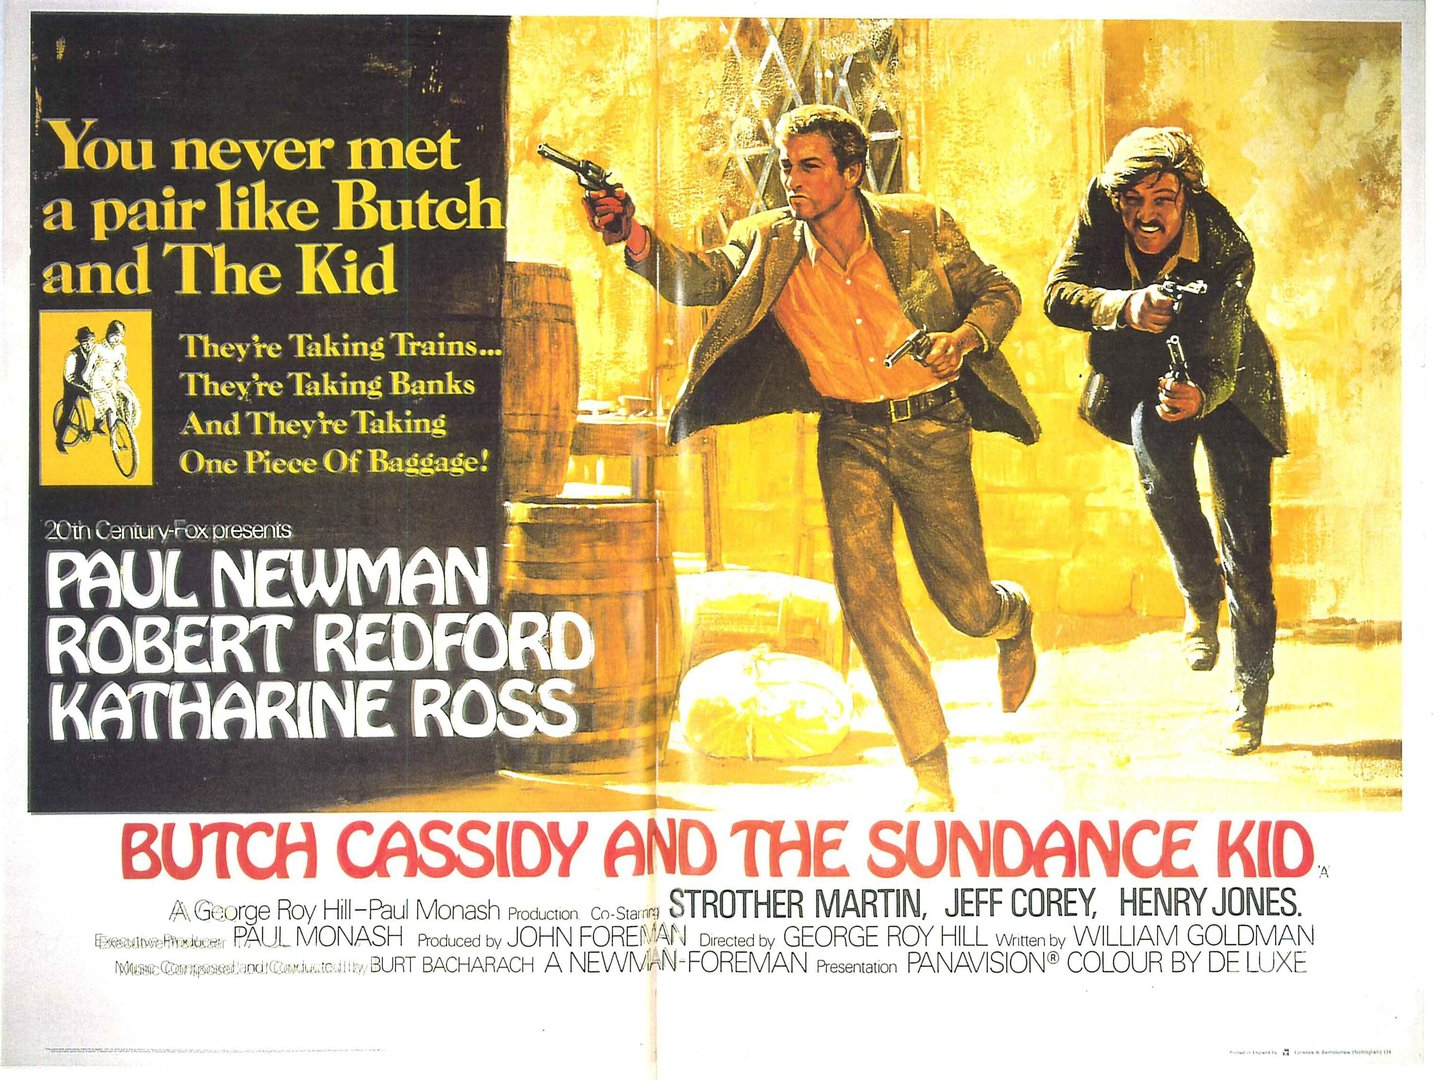 Butch cassidy and the sundance kid?